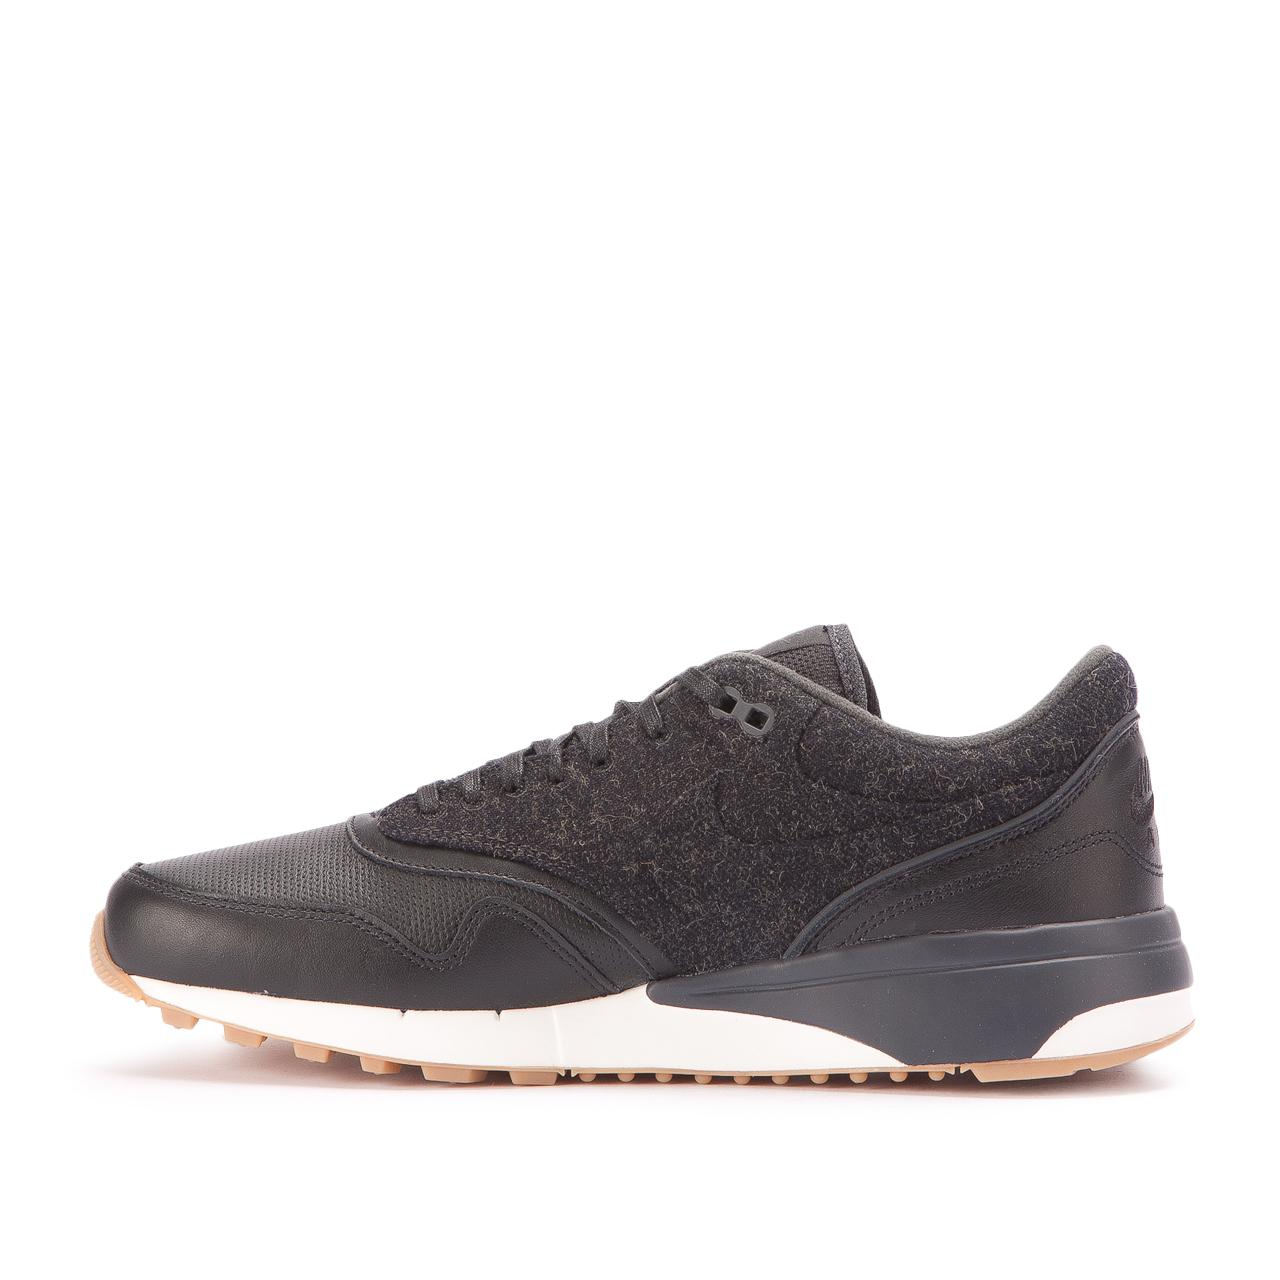 Nike Leather Nike Air Odyssey Lx in Black for Men